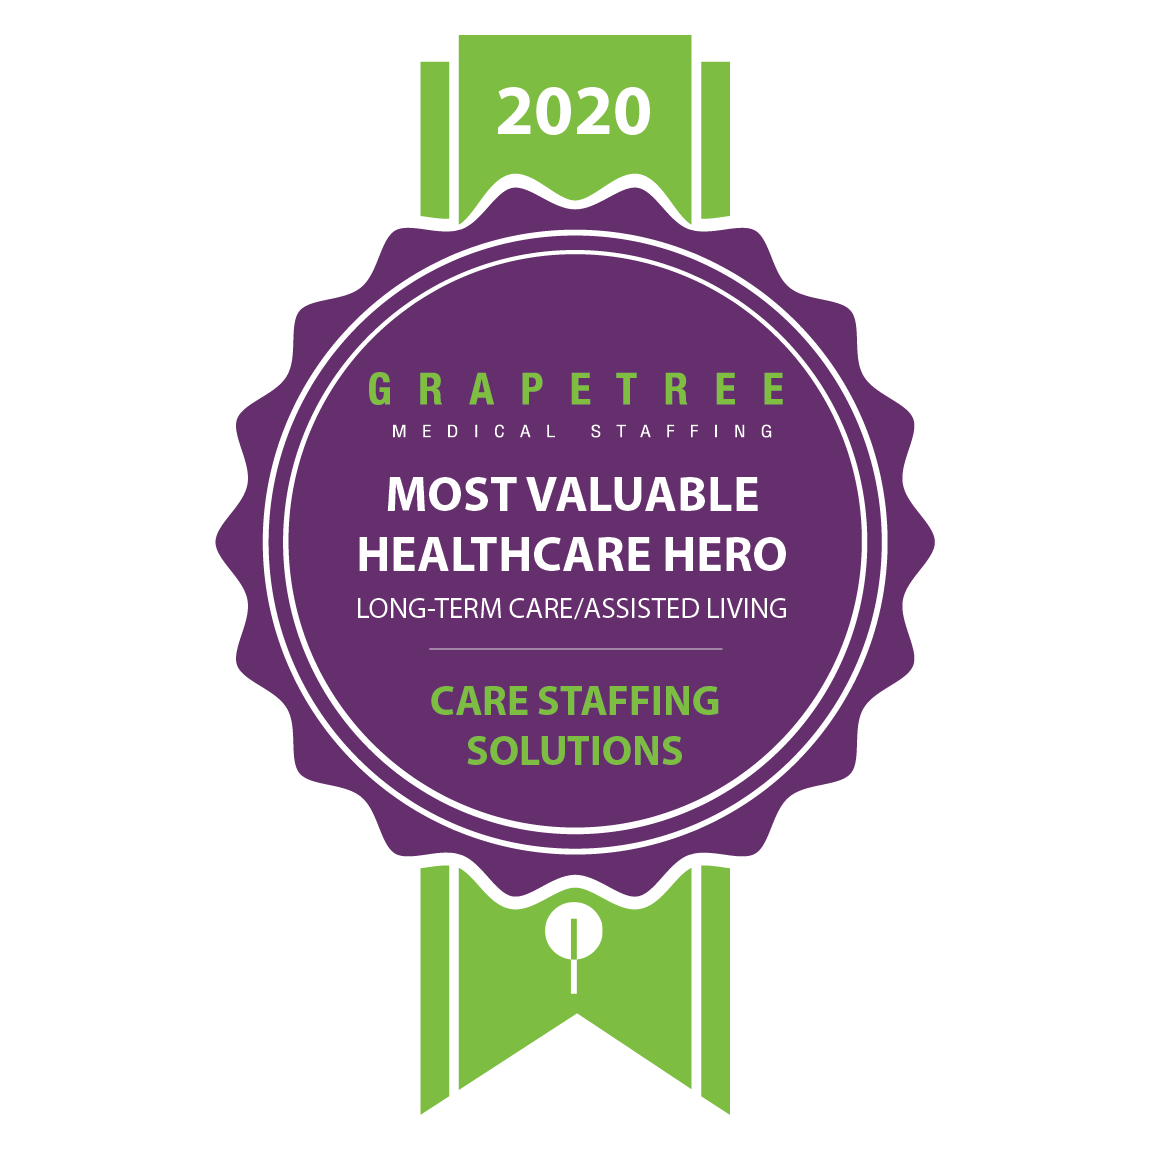 MOST VALUABLE HEALTHCARE HERO (LONG-TERM CARE/ASSISTED LIVING)  Care Staffing Solutions